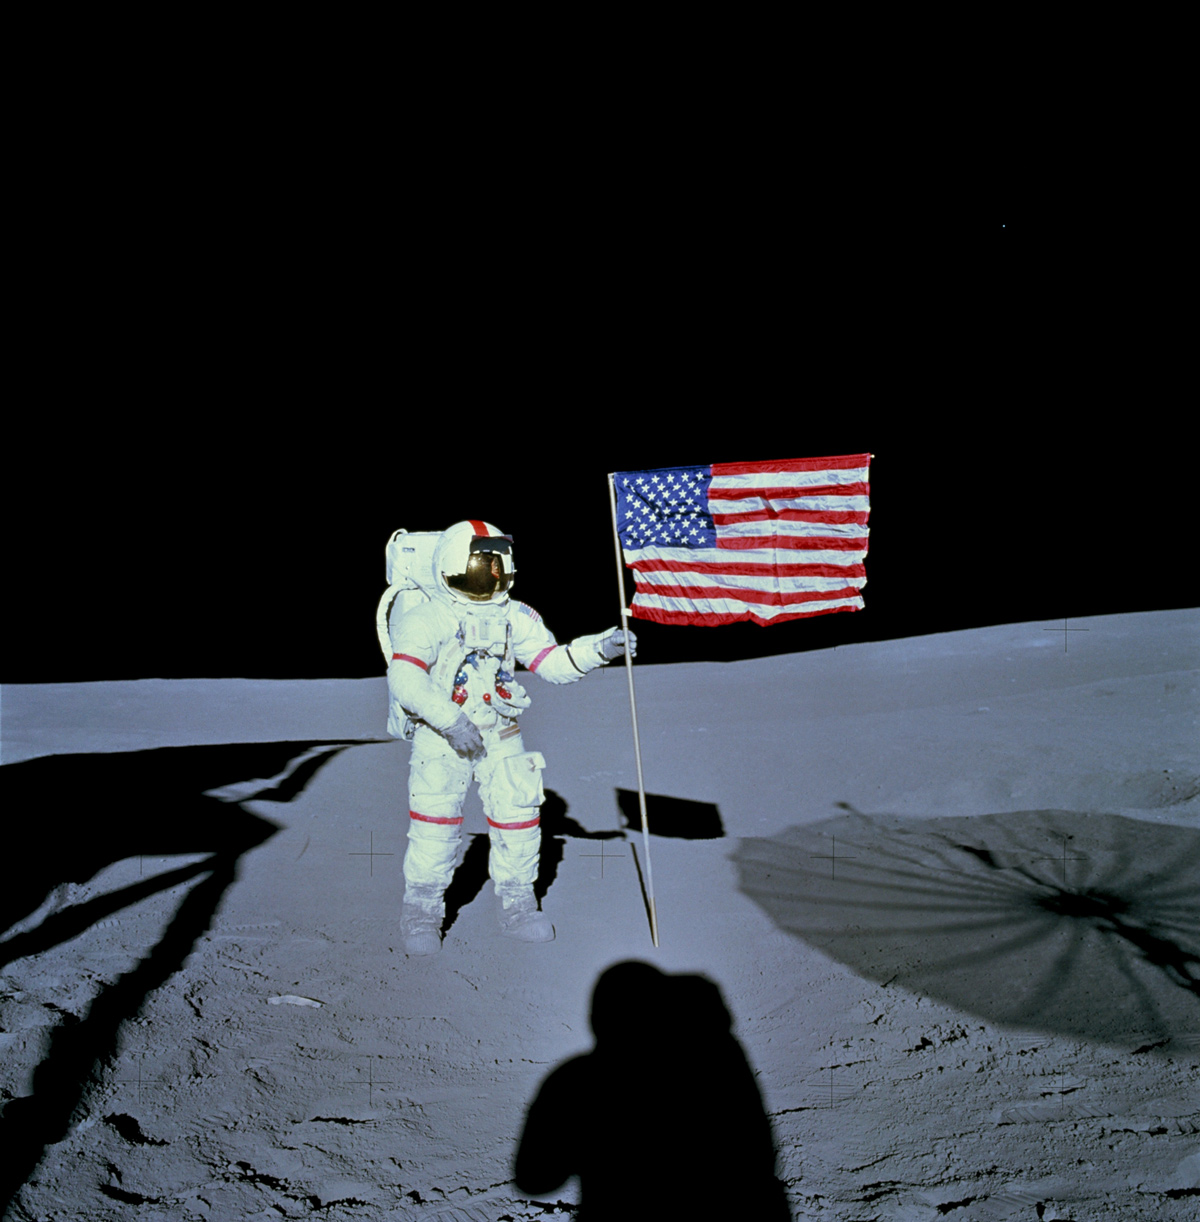 Astronaut holding American flag on the moon